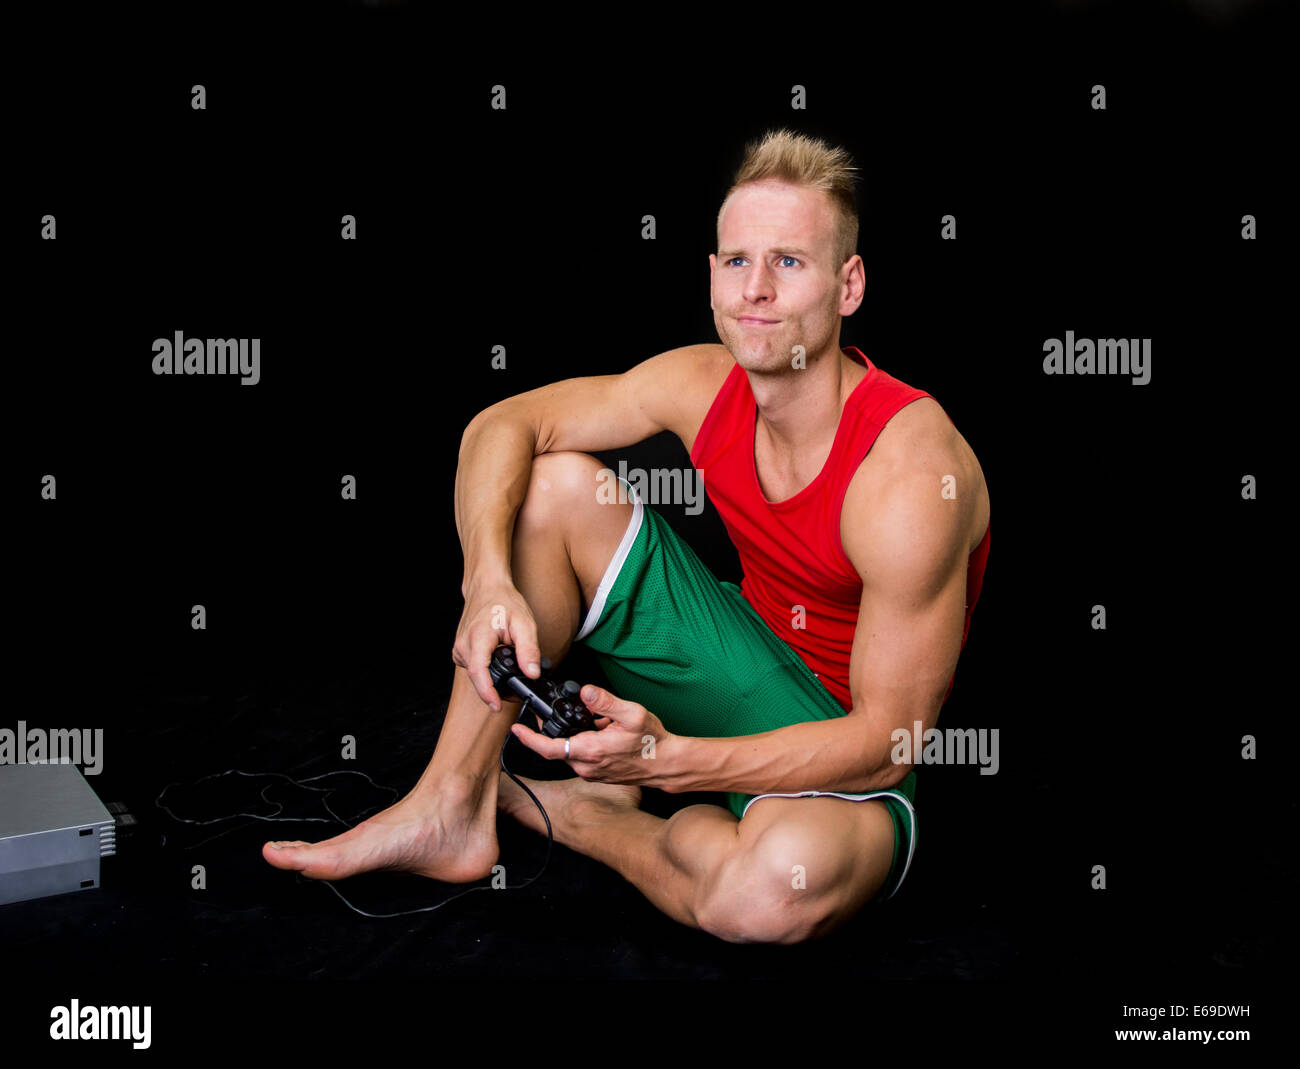 Young man deeply immersed playing a video game while sitting on the floor - Stock Image